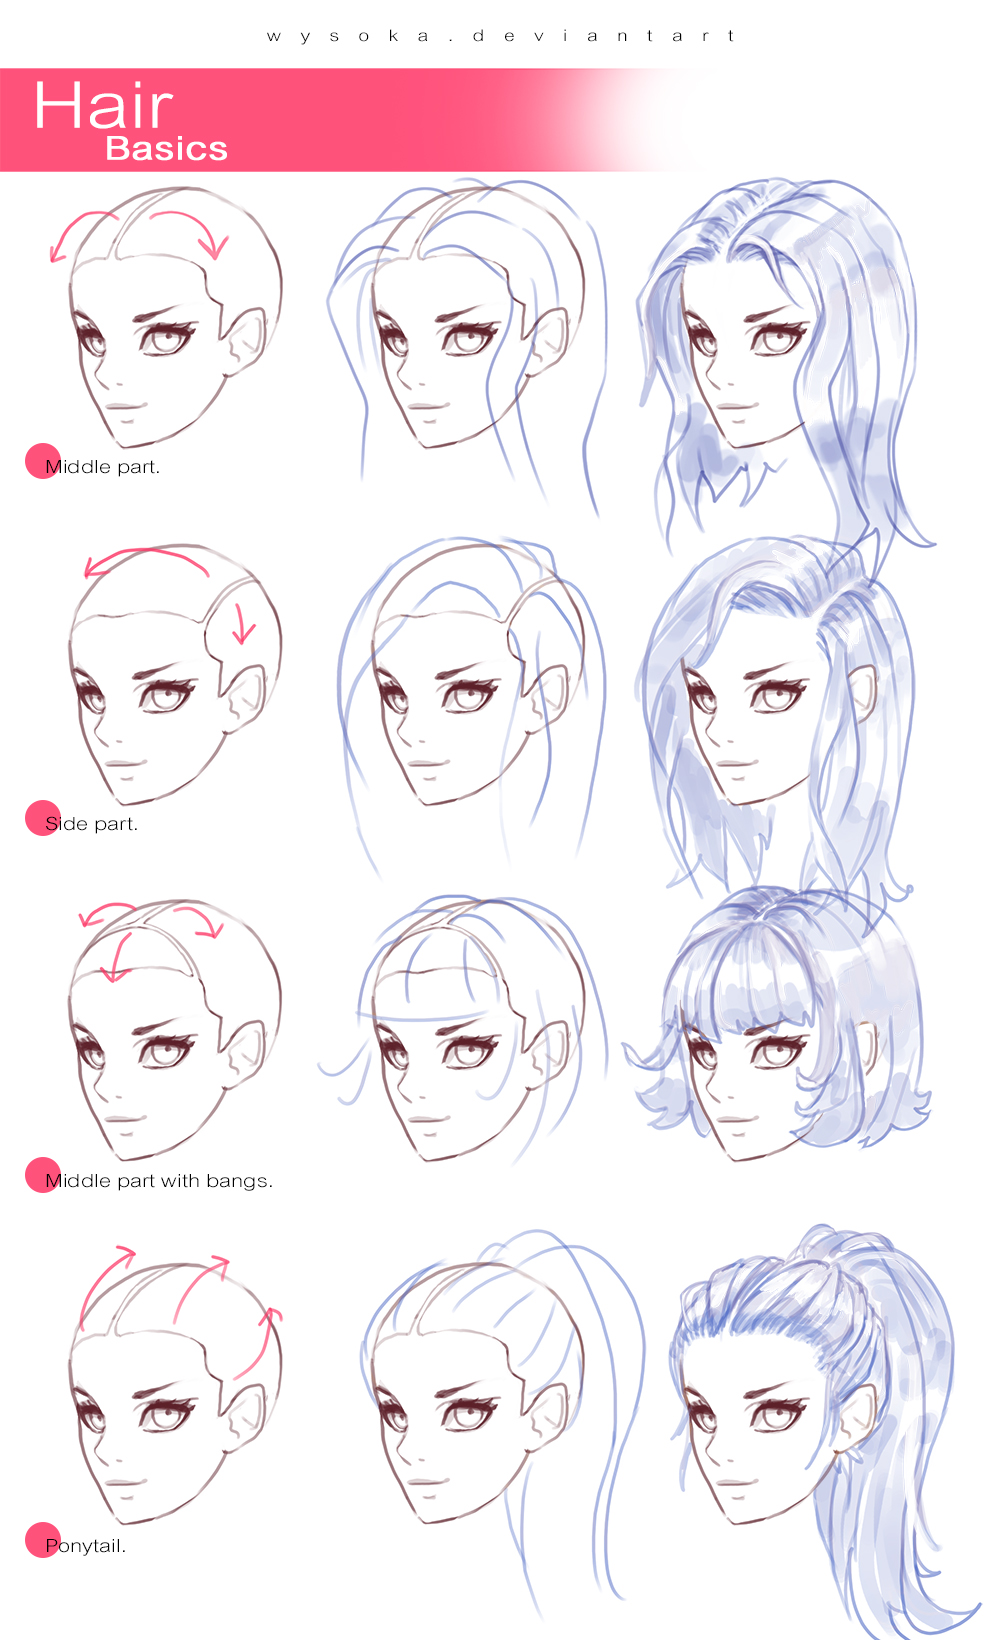 How To Draw Hair 2 By Wysoka On Deviantart